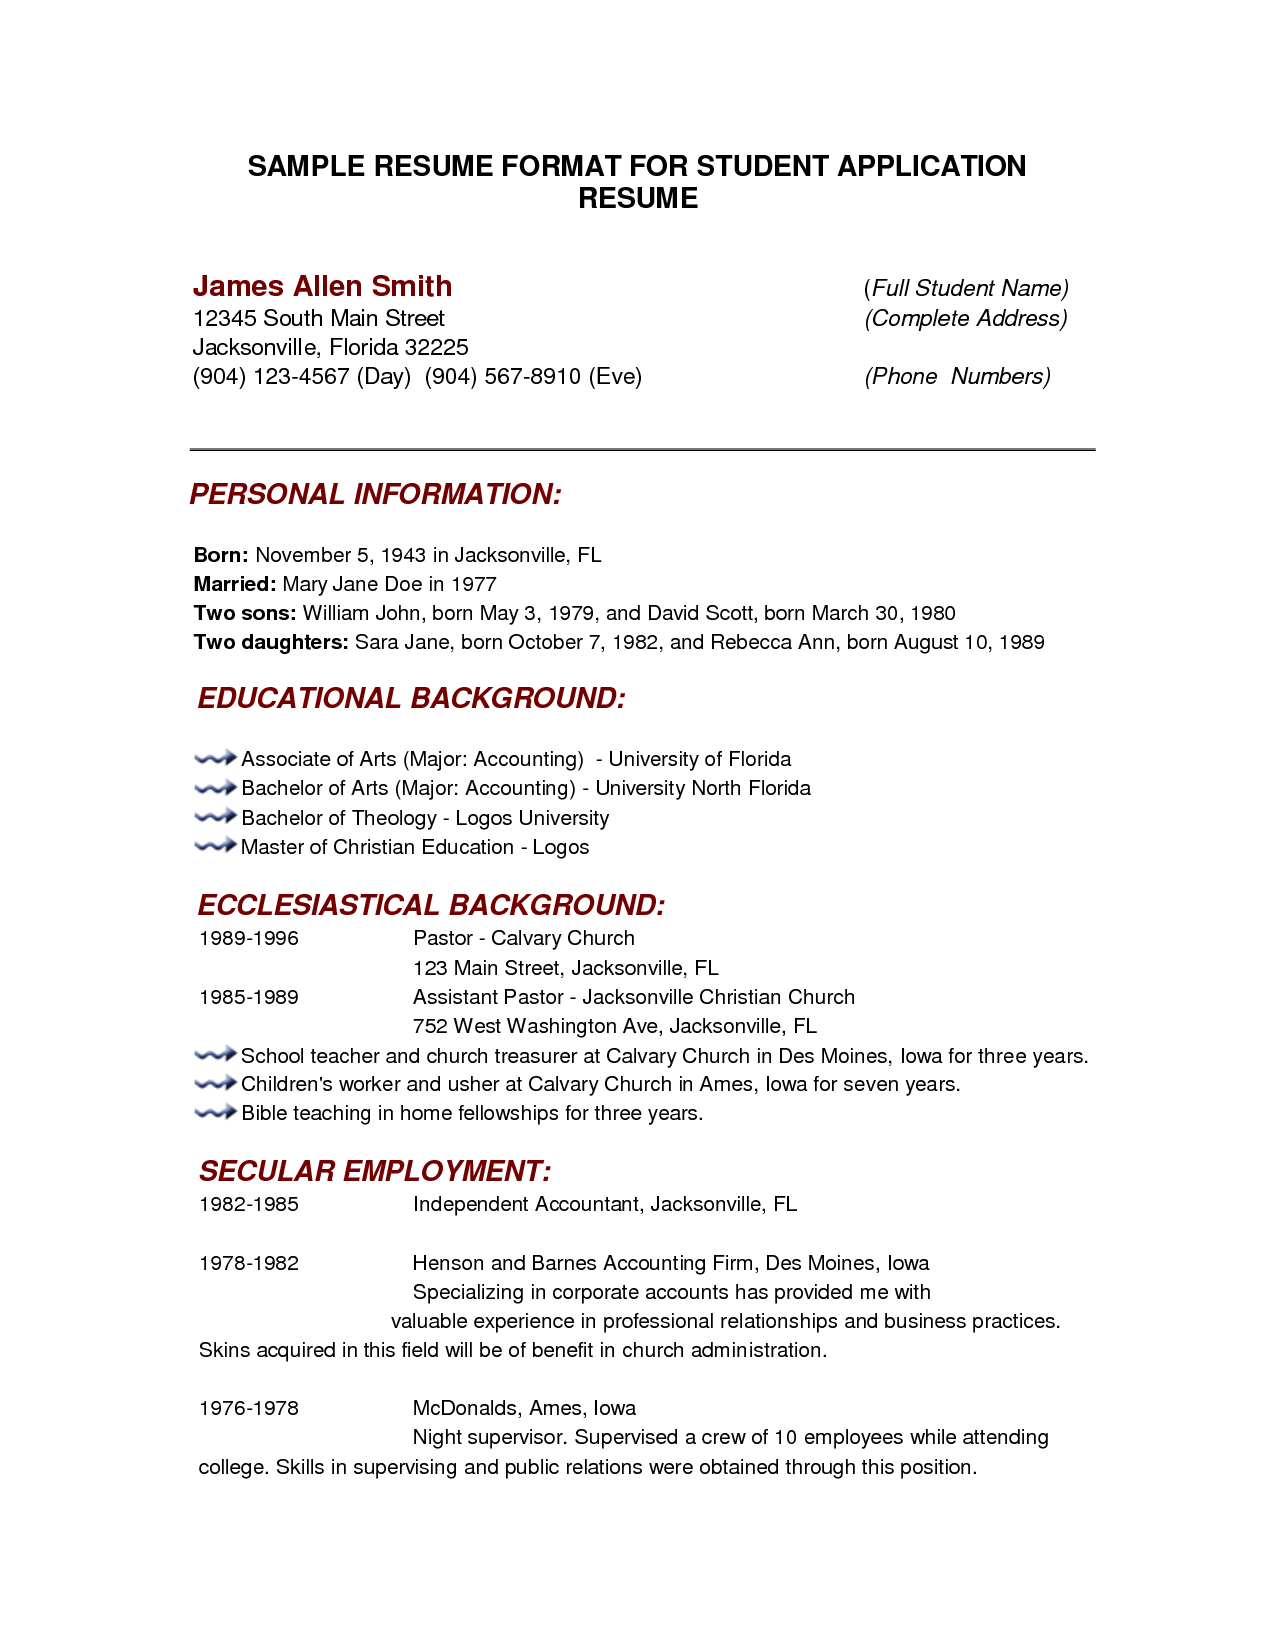 Resume Format College Student Resume Template For College Students  Httpwwwresumecareer